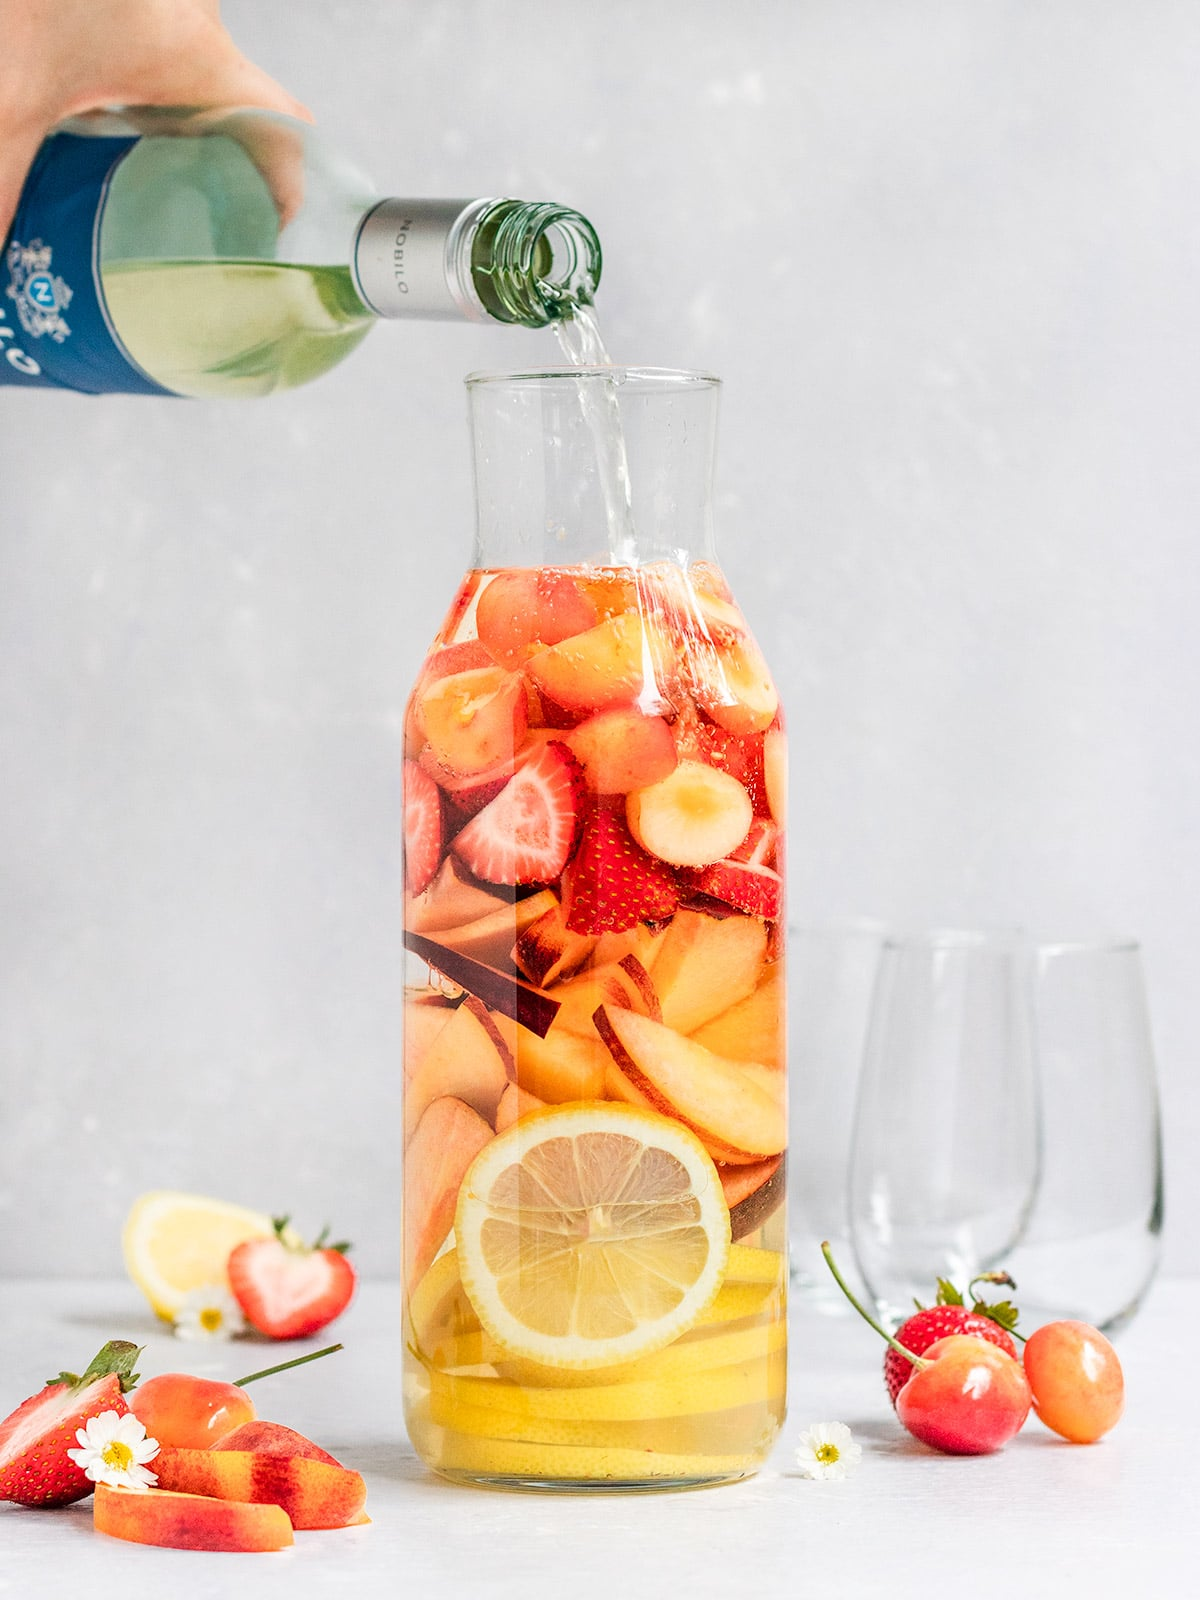 a pitcher filled with fresh lemon slices, peach slices, strawberries, and cherries getting filled with white wine